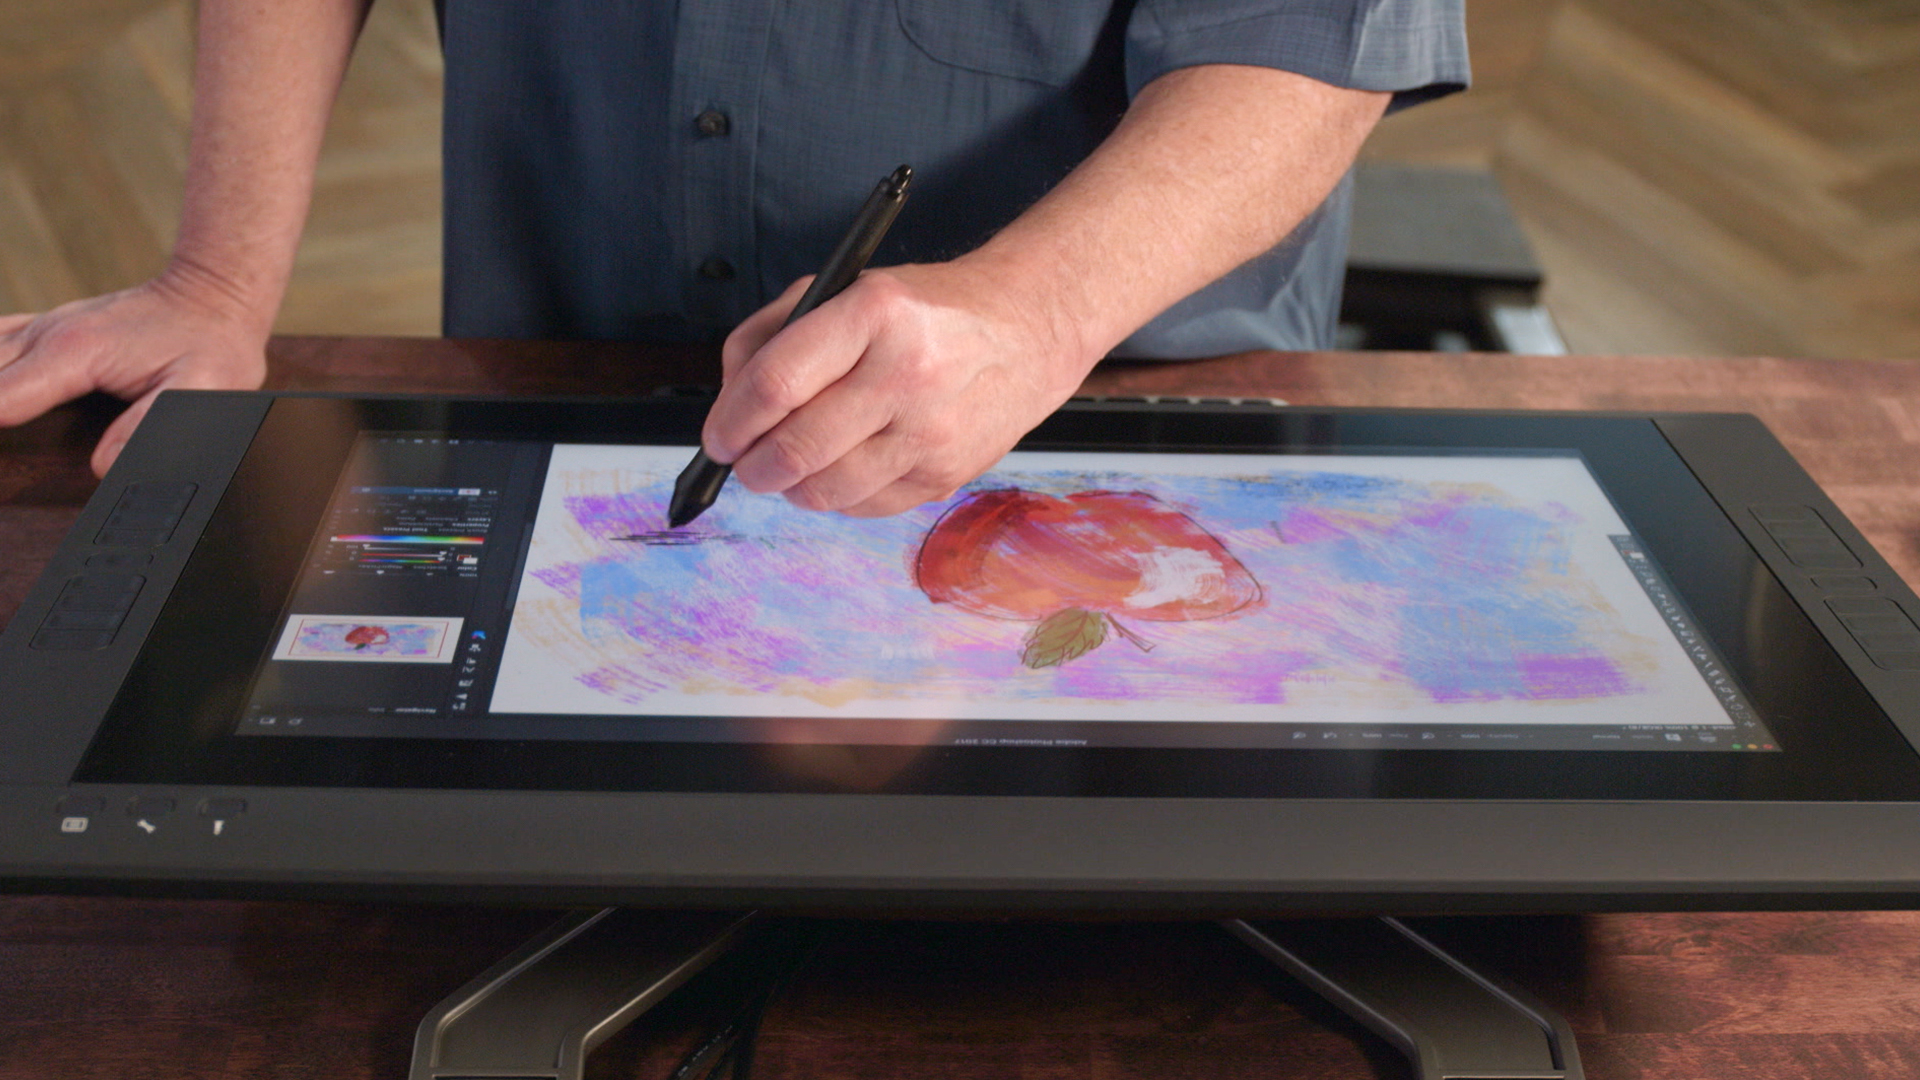 Setting up the Intuos Pro